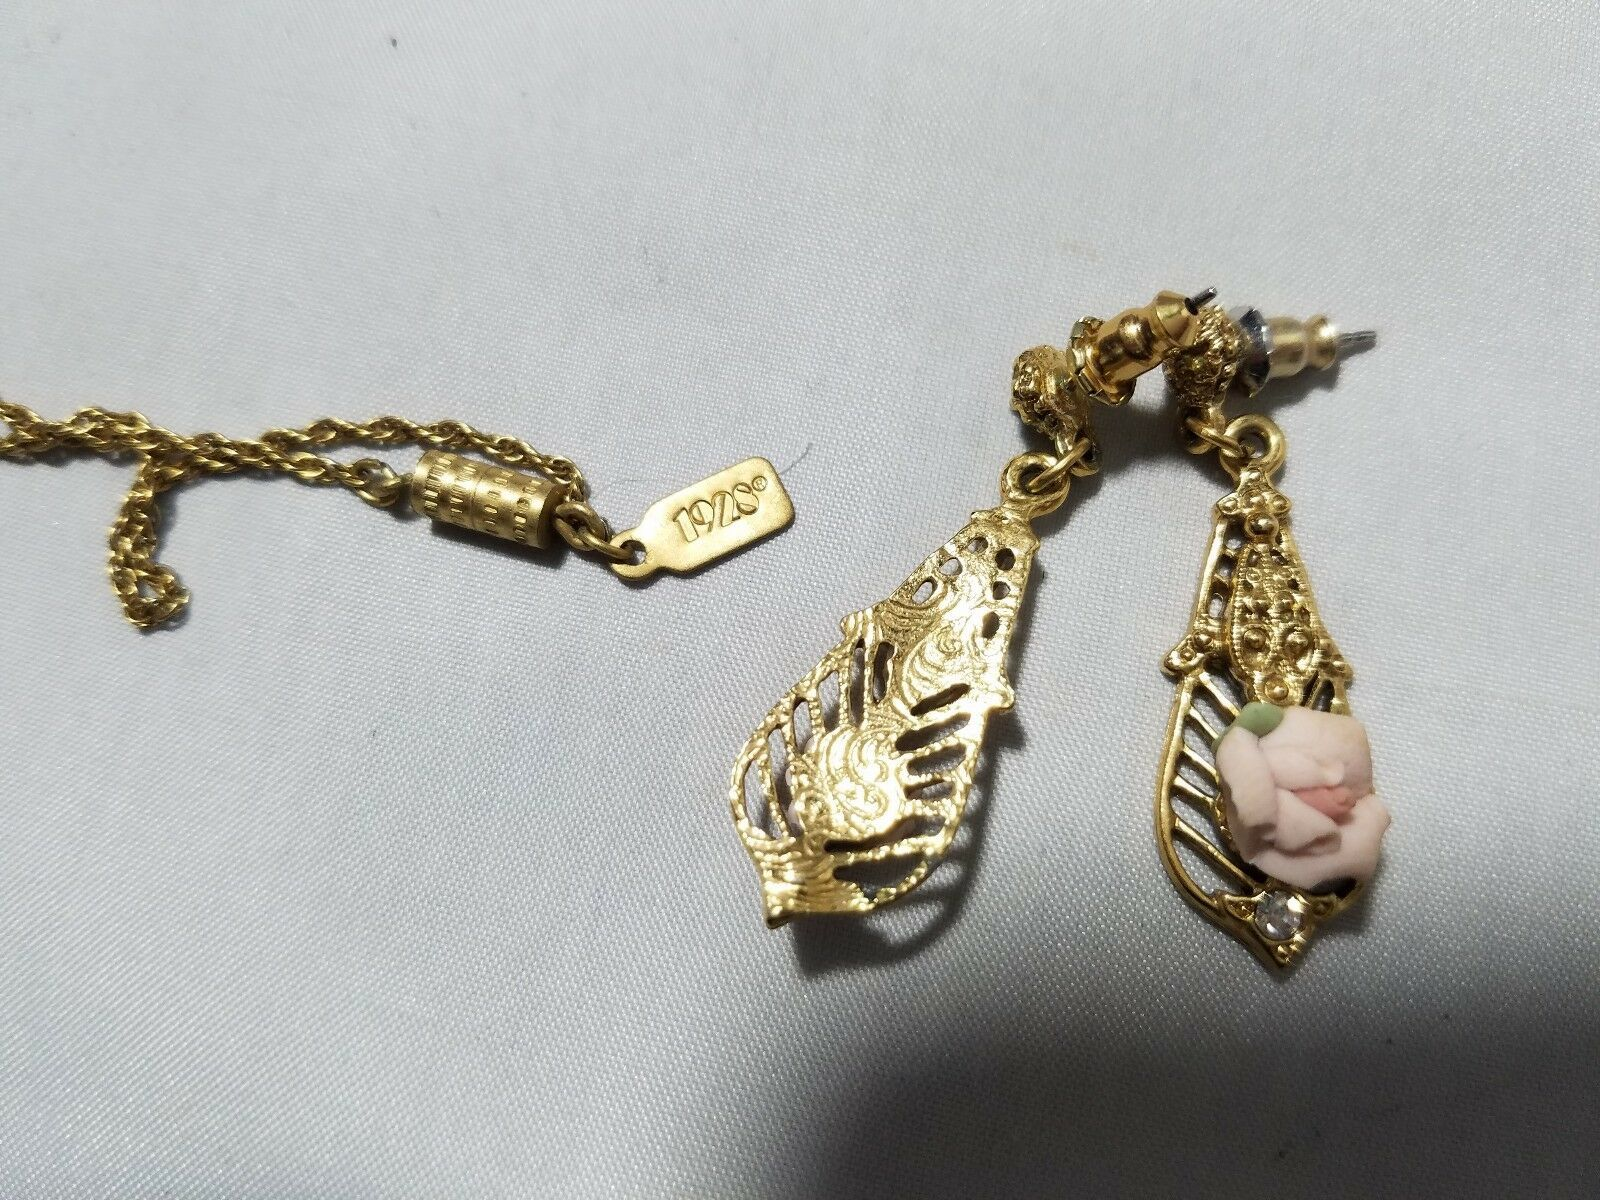 Vintage Signed 1928 Jewelry Set Gold Tone Flower Necklace & Matching Earrings